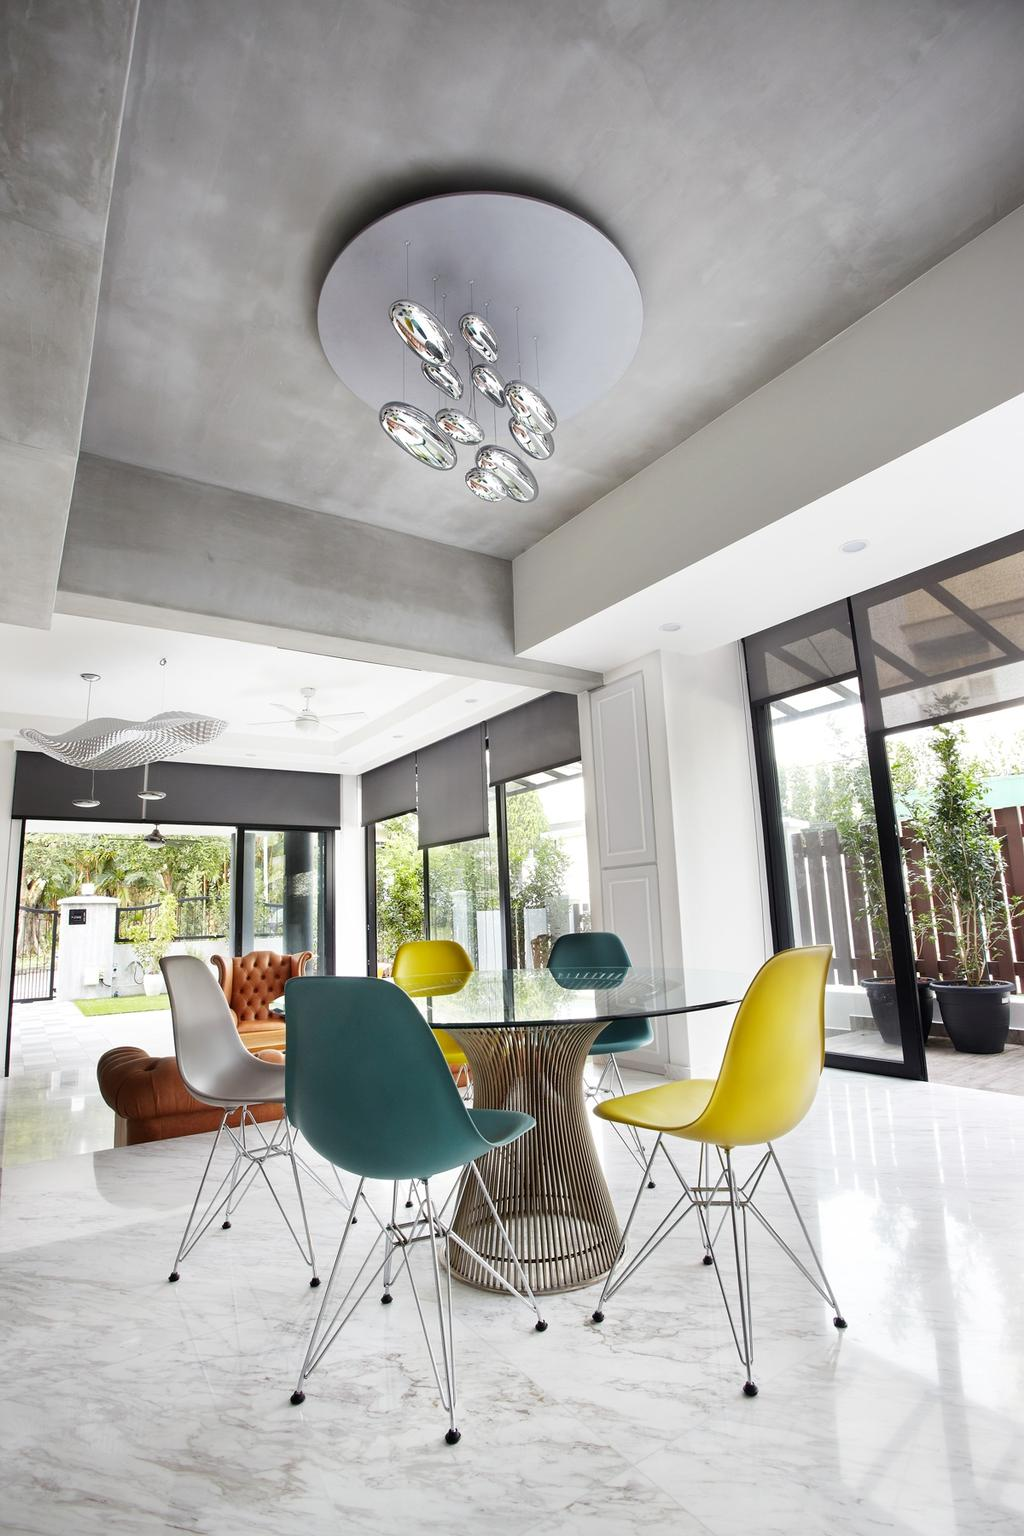 Eclectic, Landed, Dining Room, Eng Kong Terrace, Interior Designer, Free Space Intent, Hanging Light, Chandelie, Glass Table, Marble Floor, Chair, Furniture, Indoors, Interior Design, Room, Bonsai, Flora, Jar, Plant, Potted Plant, Pottery, Tree, Vase